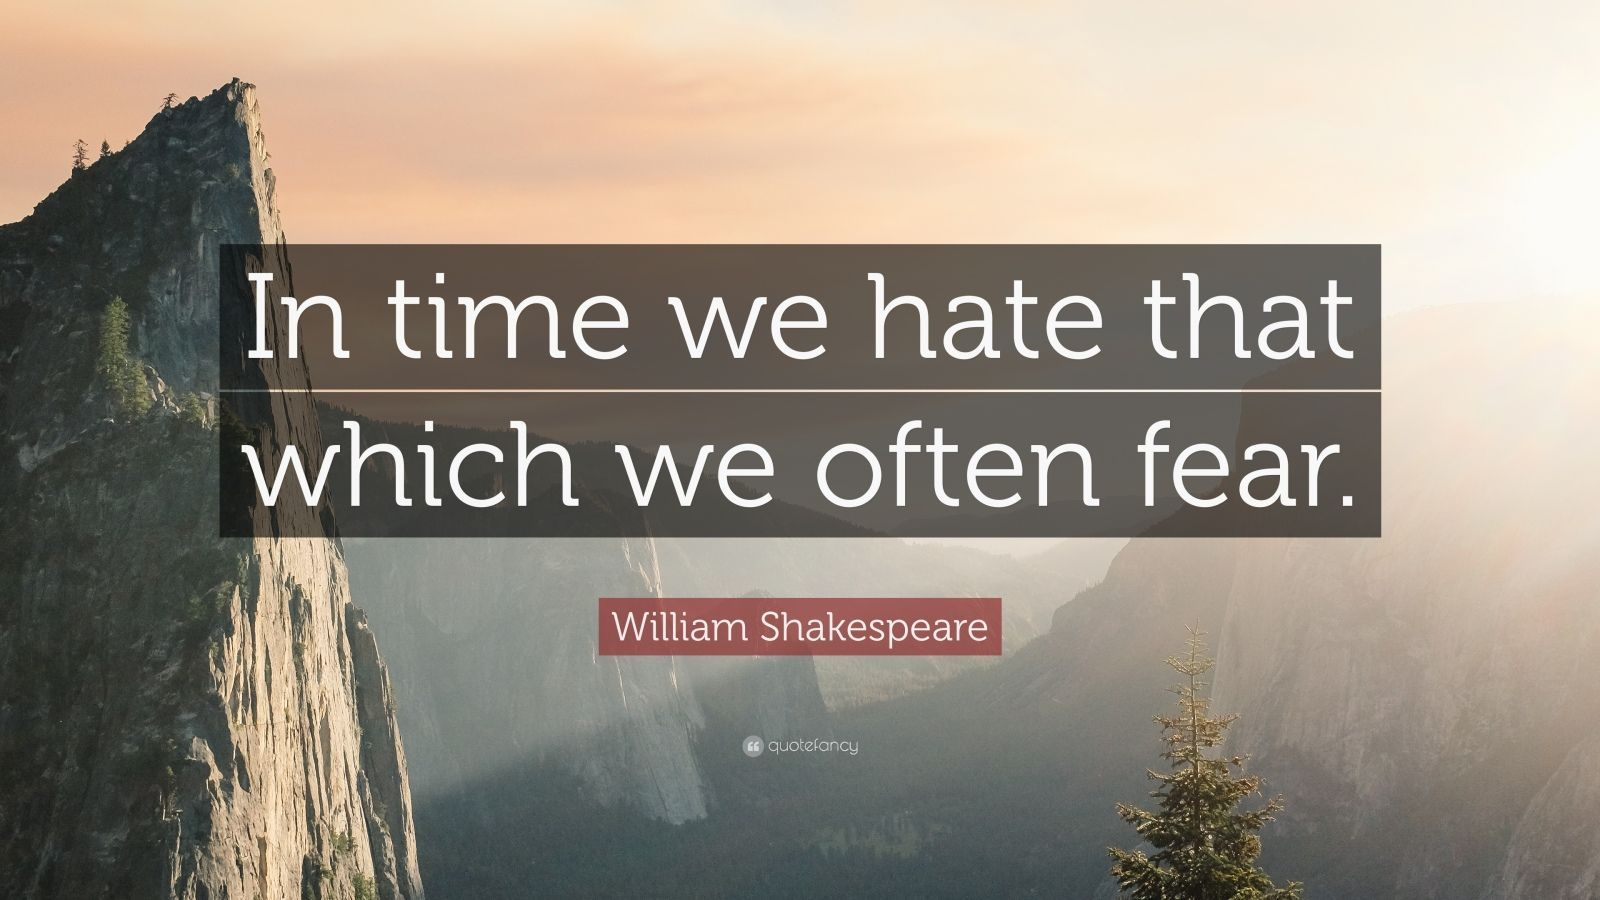 Discover The Top 10 Greatest Shakespeare Quotes Inspirational William Shakespeare Love Life And Wisdom Quotes Poems And Poetry 40th Quote Life Francis Chan